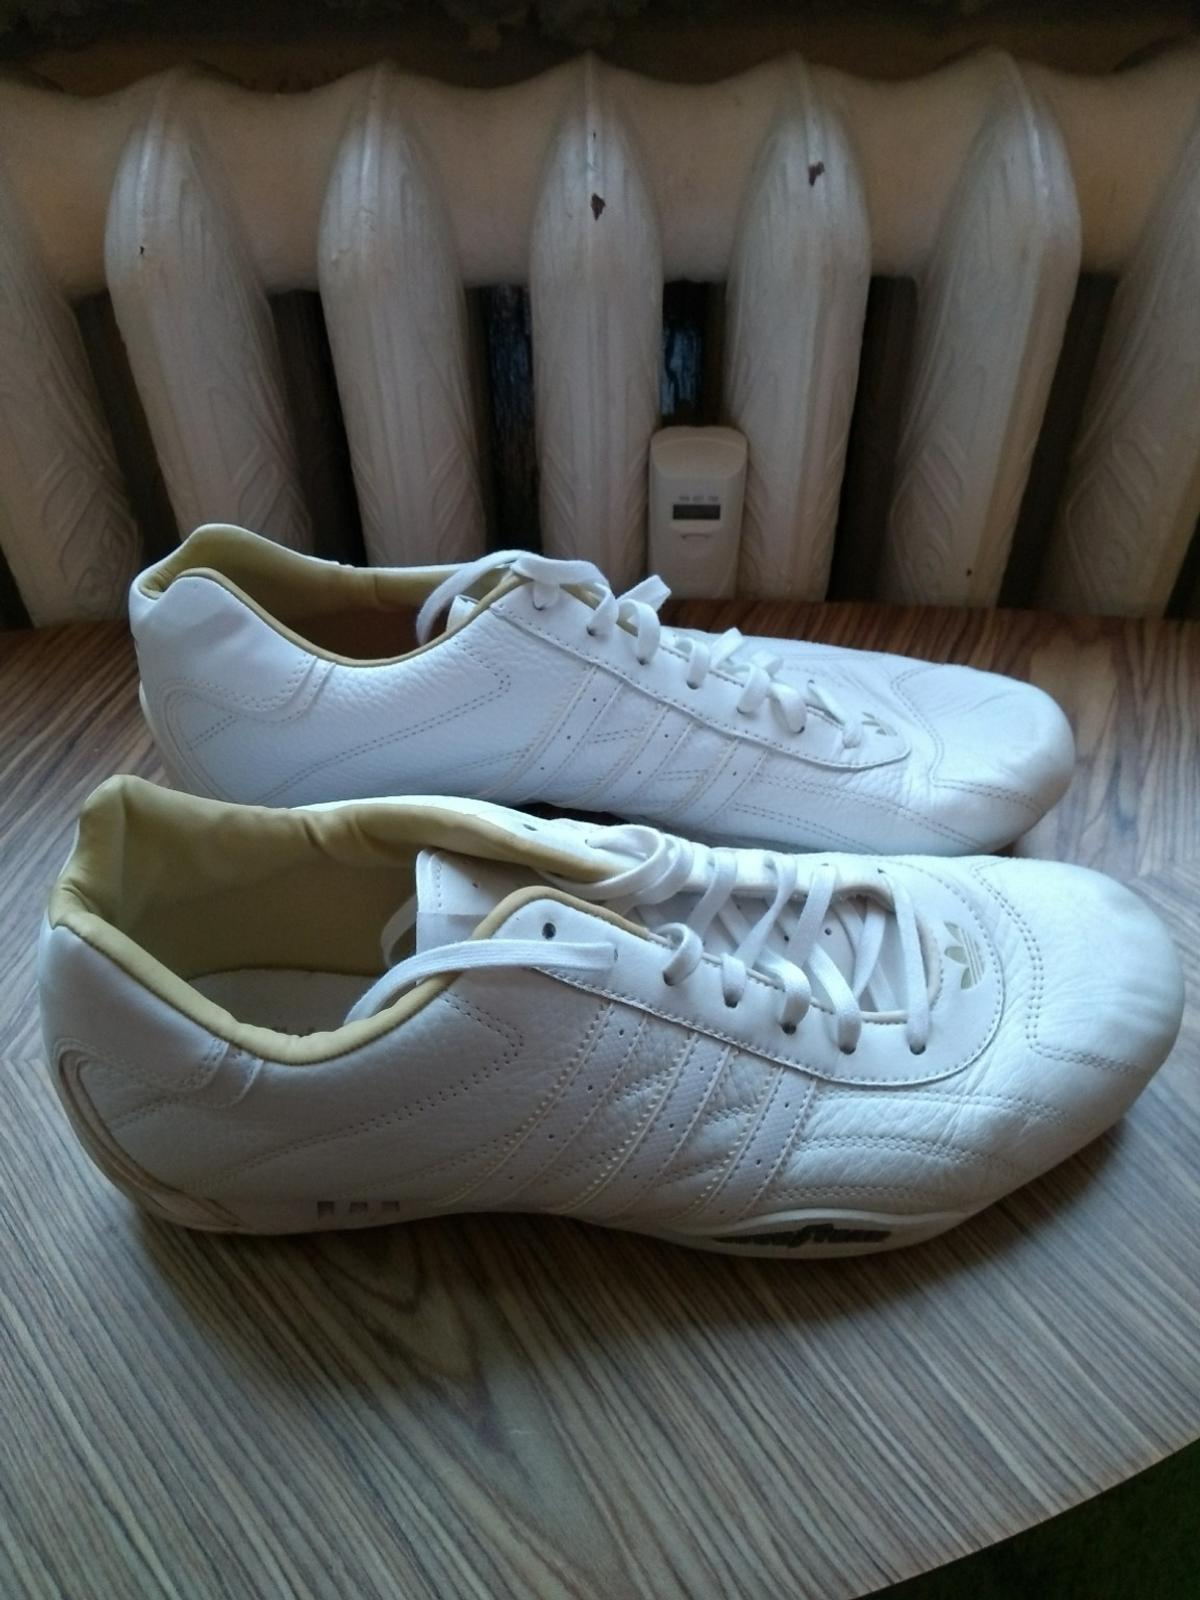 00 for Goodyear sale 12043 for Sneaker in Adidas Berlin €20 sQtChxrdB